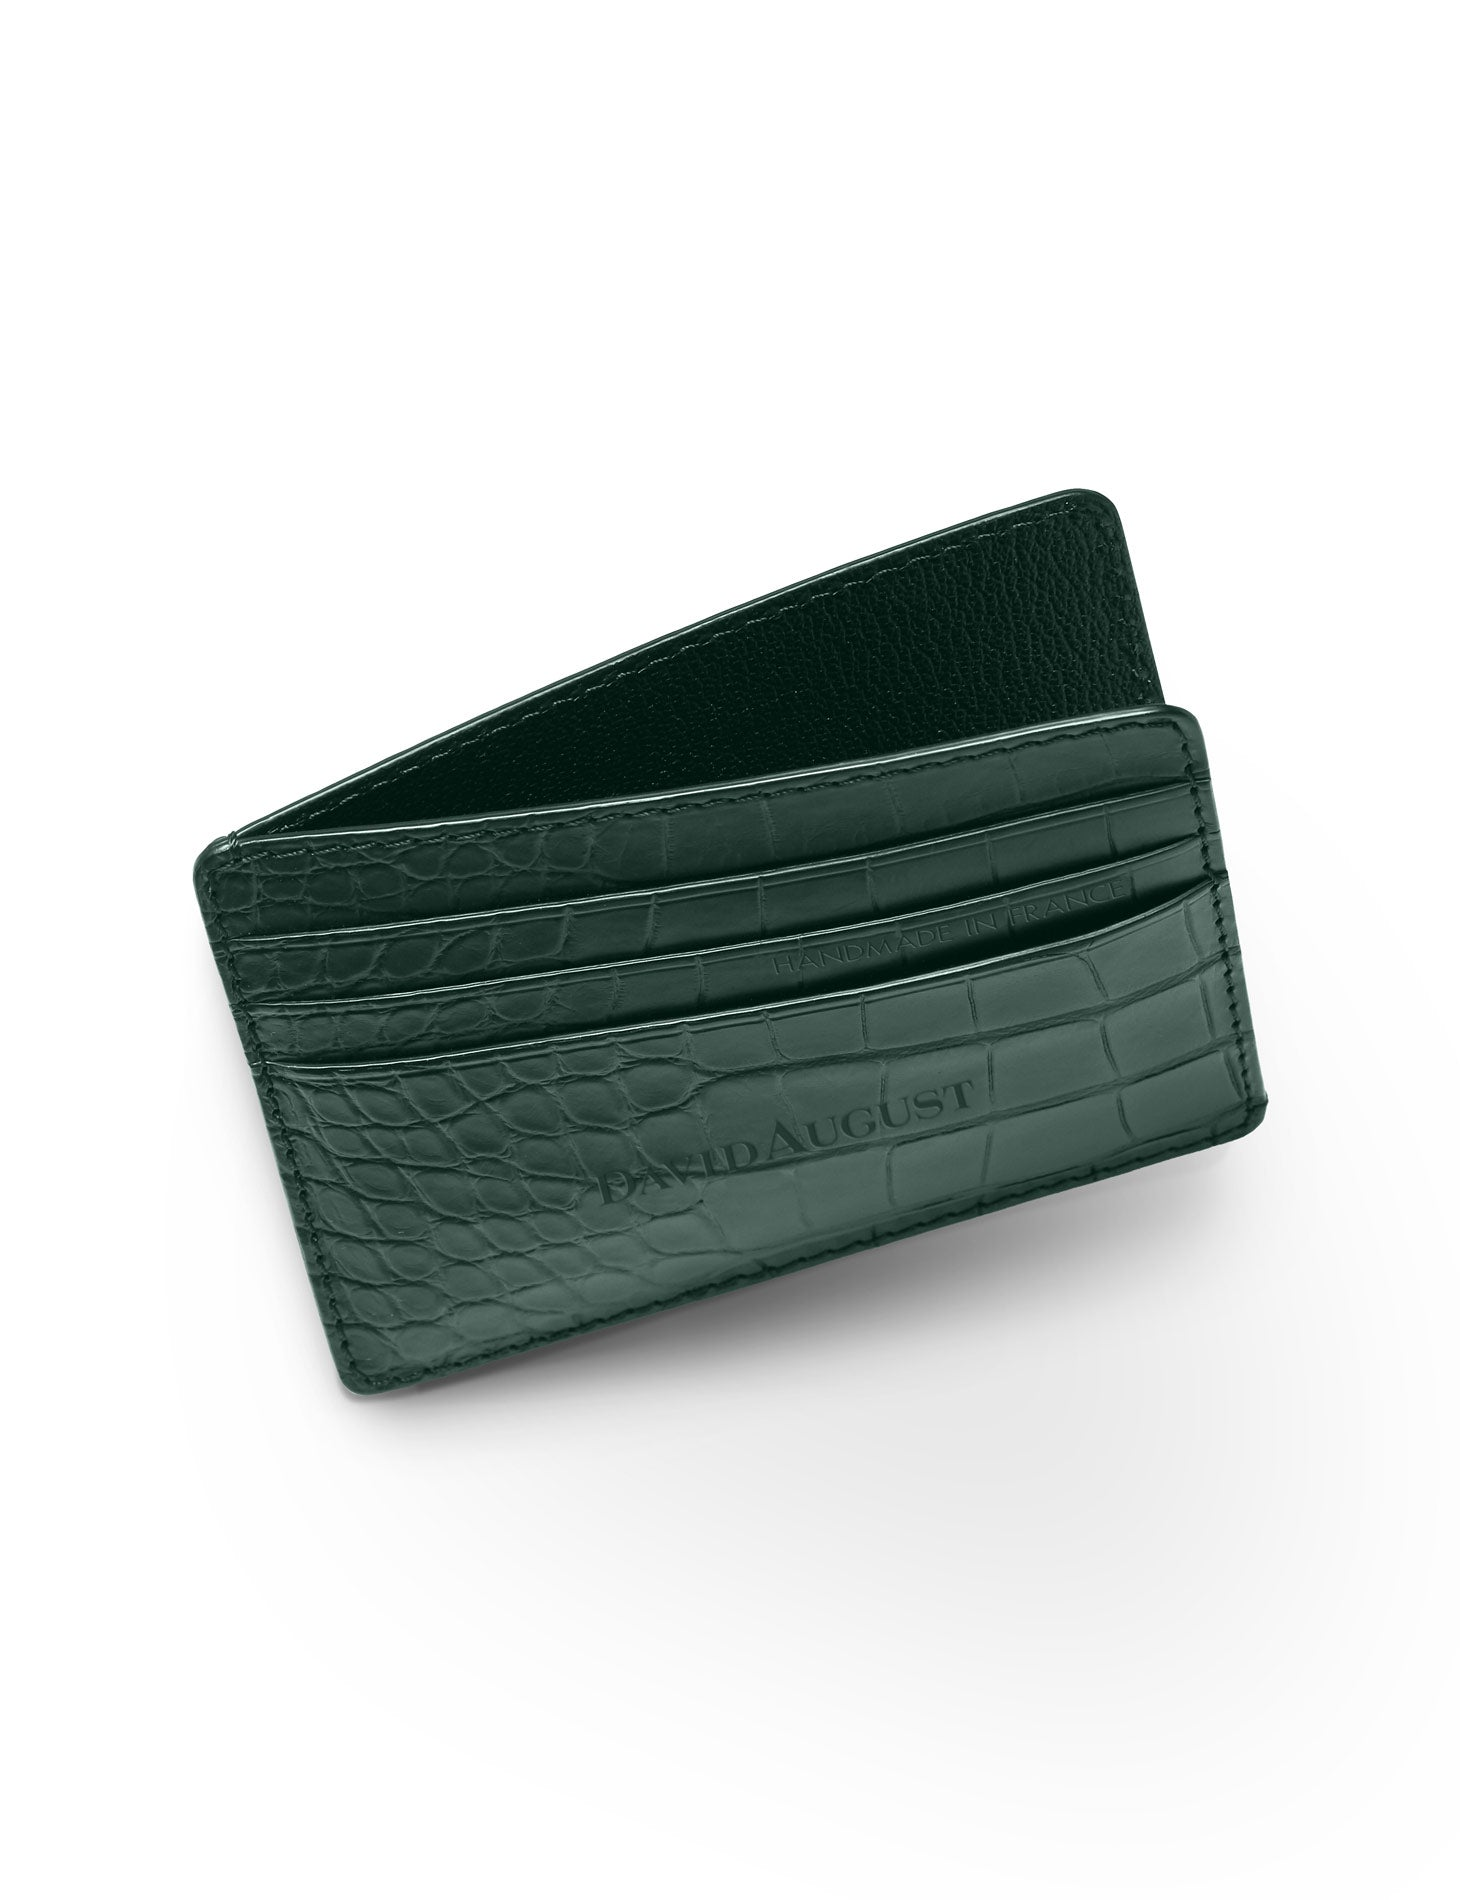 David August Luxury Genuine Alligator Card Case in Green